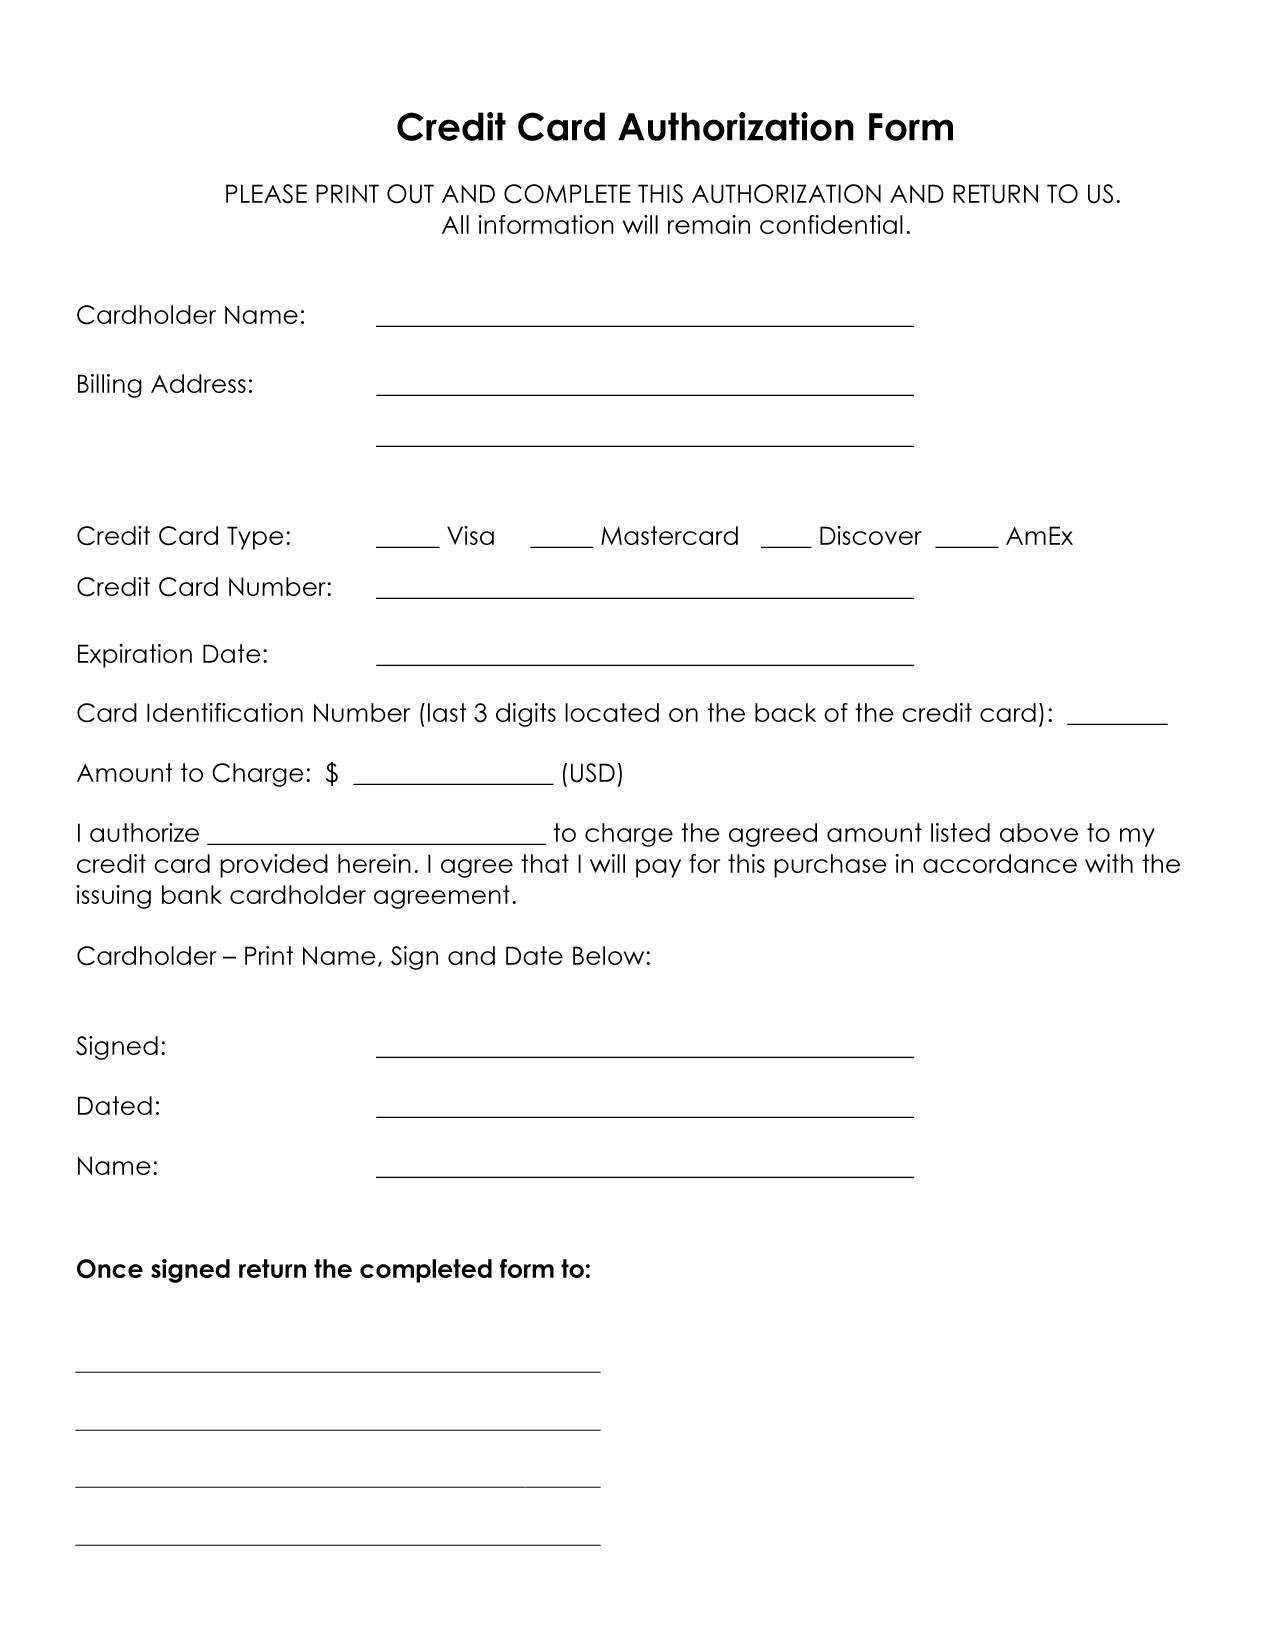 Credit Card Authorization Form Template | Credit Card With Regard To Hotel Credit Card Authorization Form Template